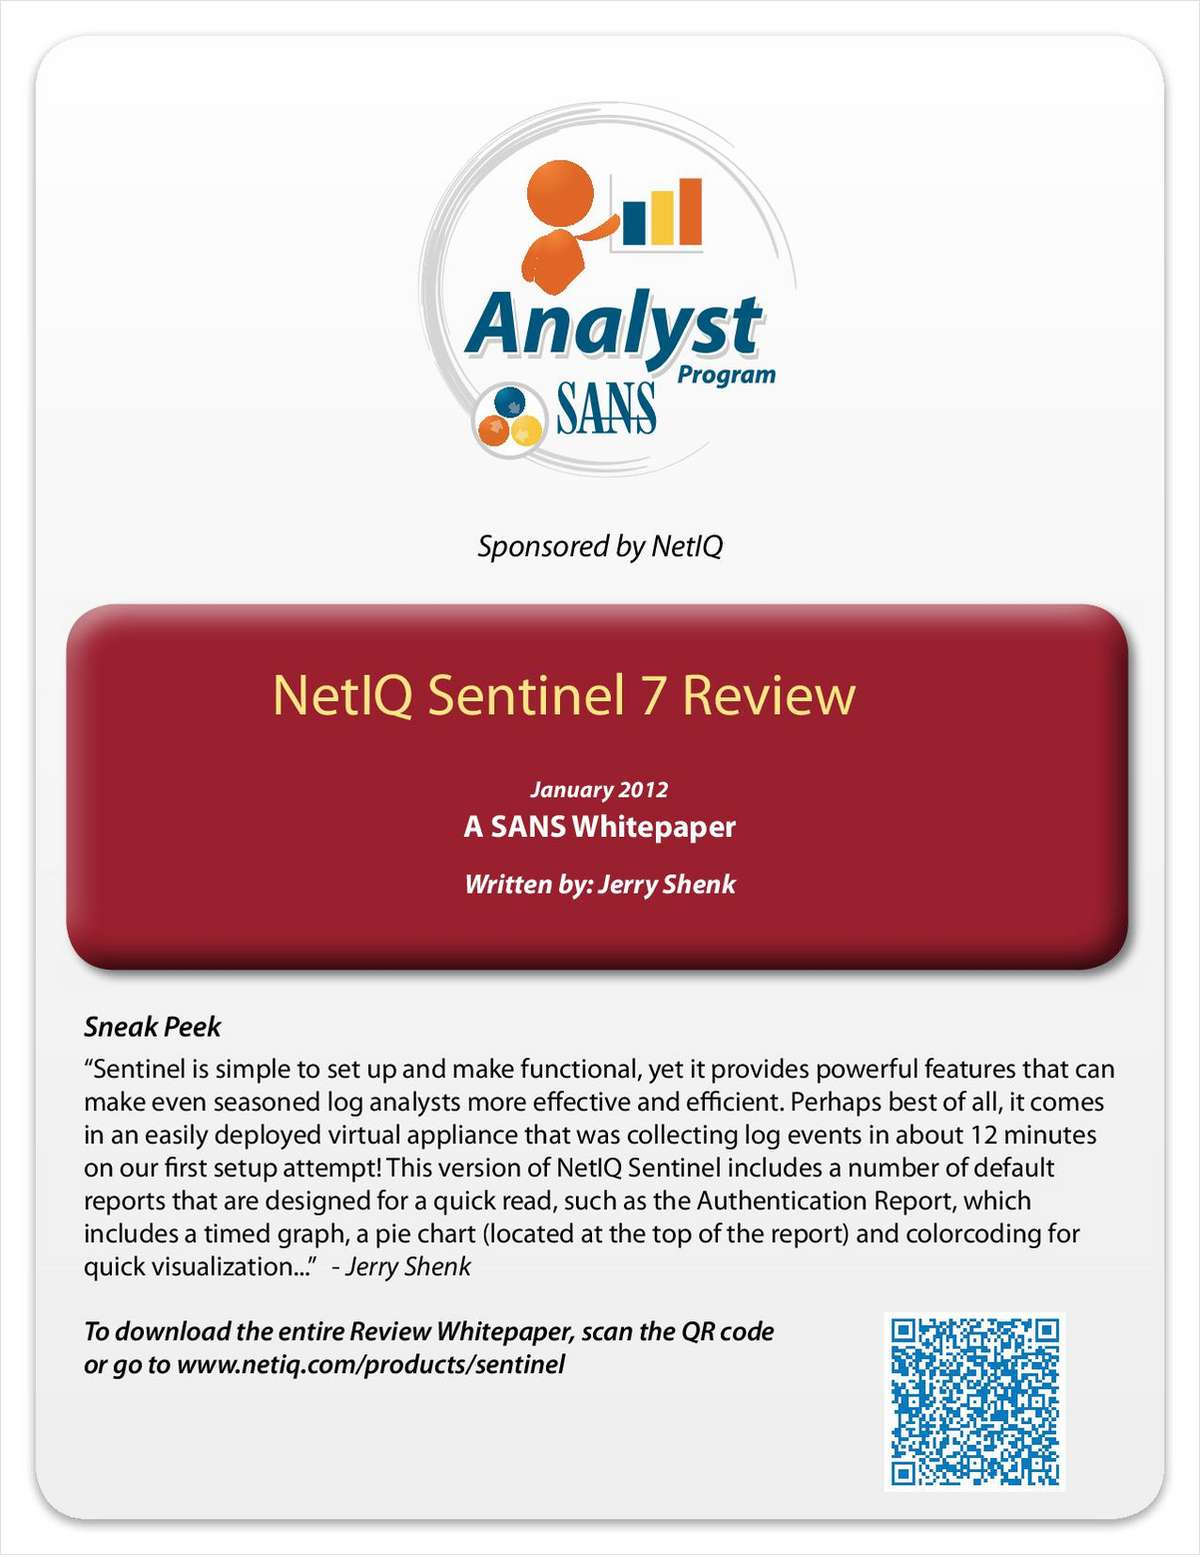 SANS Review of NetIQ Sentinel 7